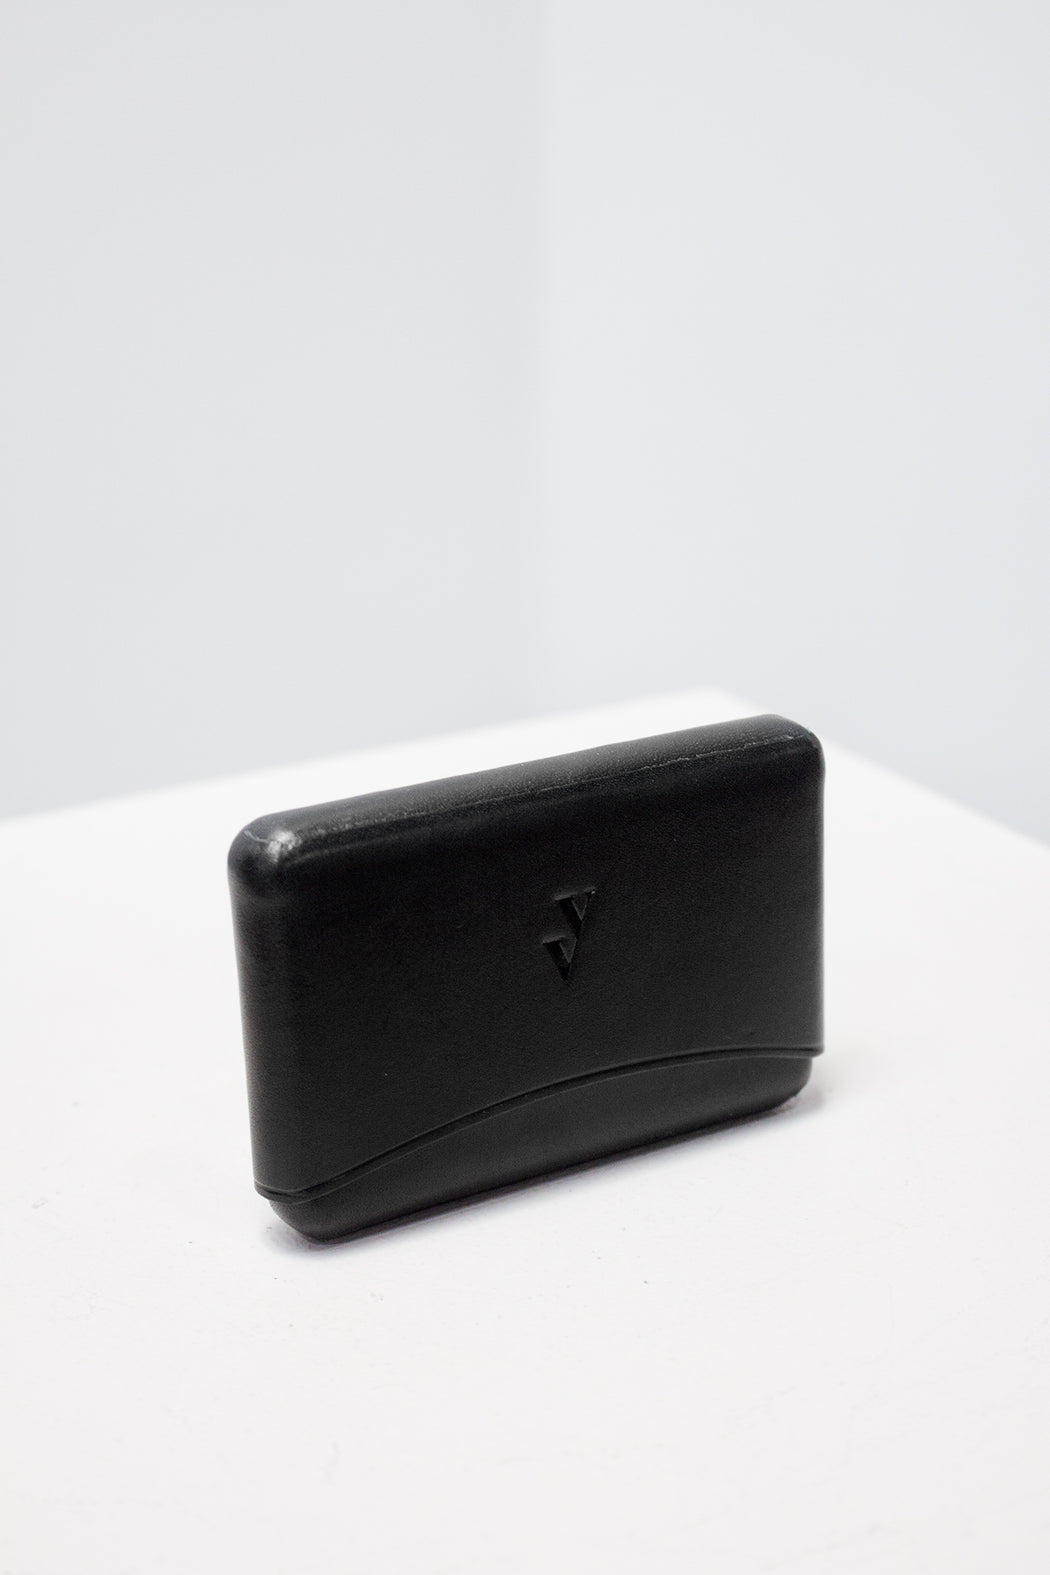 Vere Verto | Brev Gender Neutral Card Holder Black | Hazel & Rose